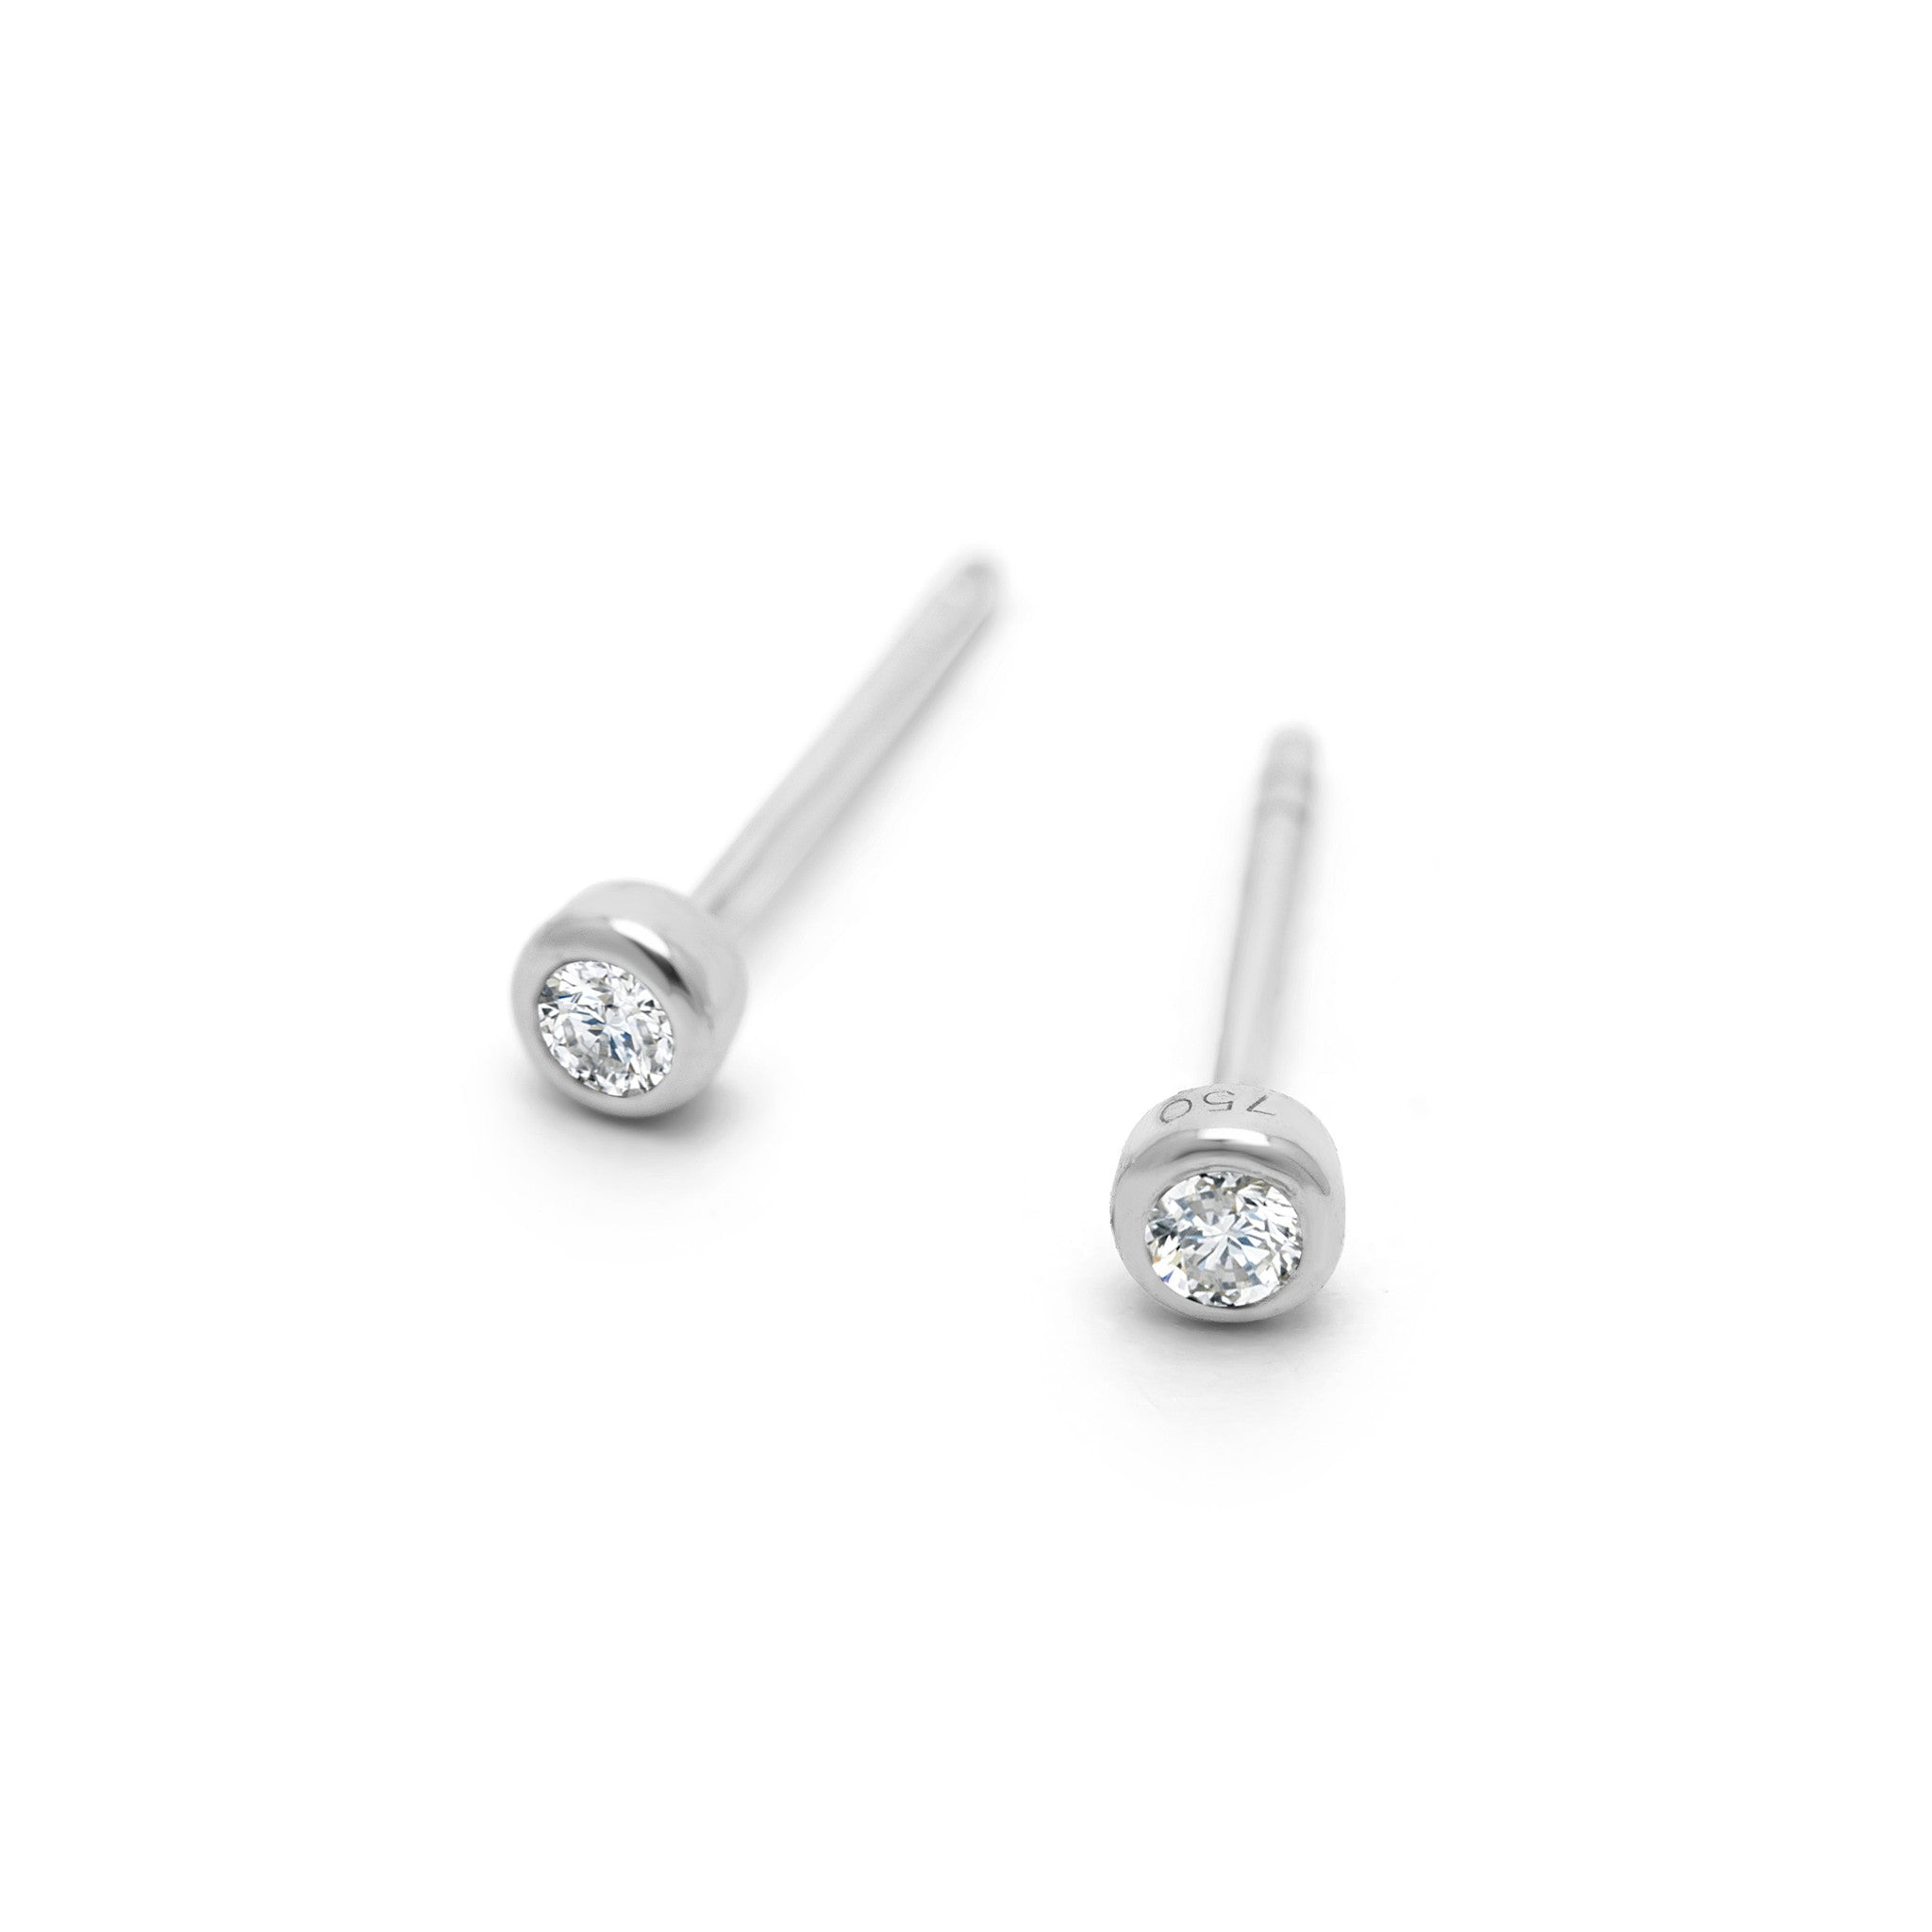 shop son charles stud pave atlantico diamond earrings jewelry studs solitaire schwartz